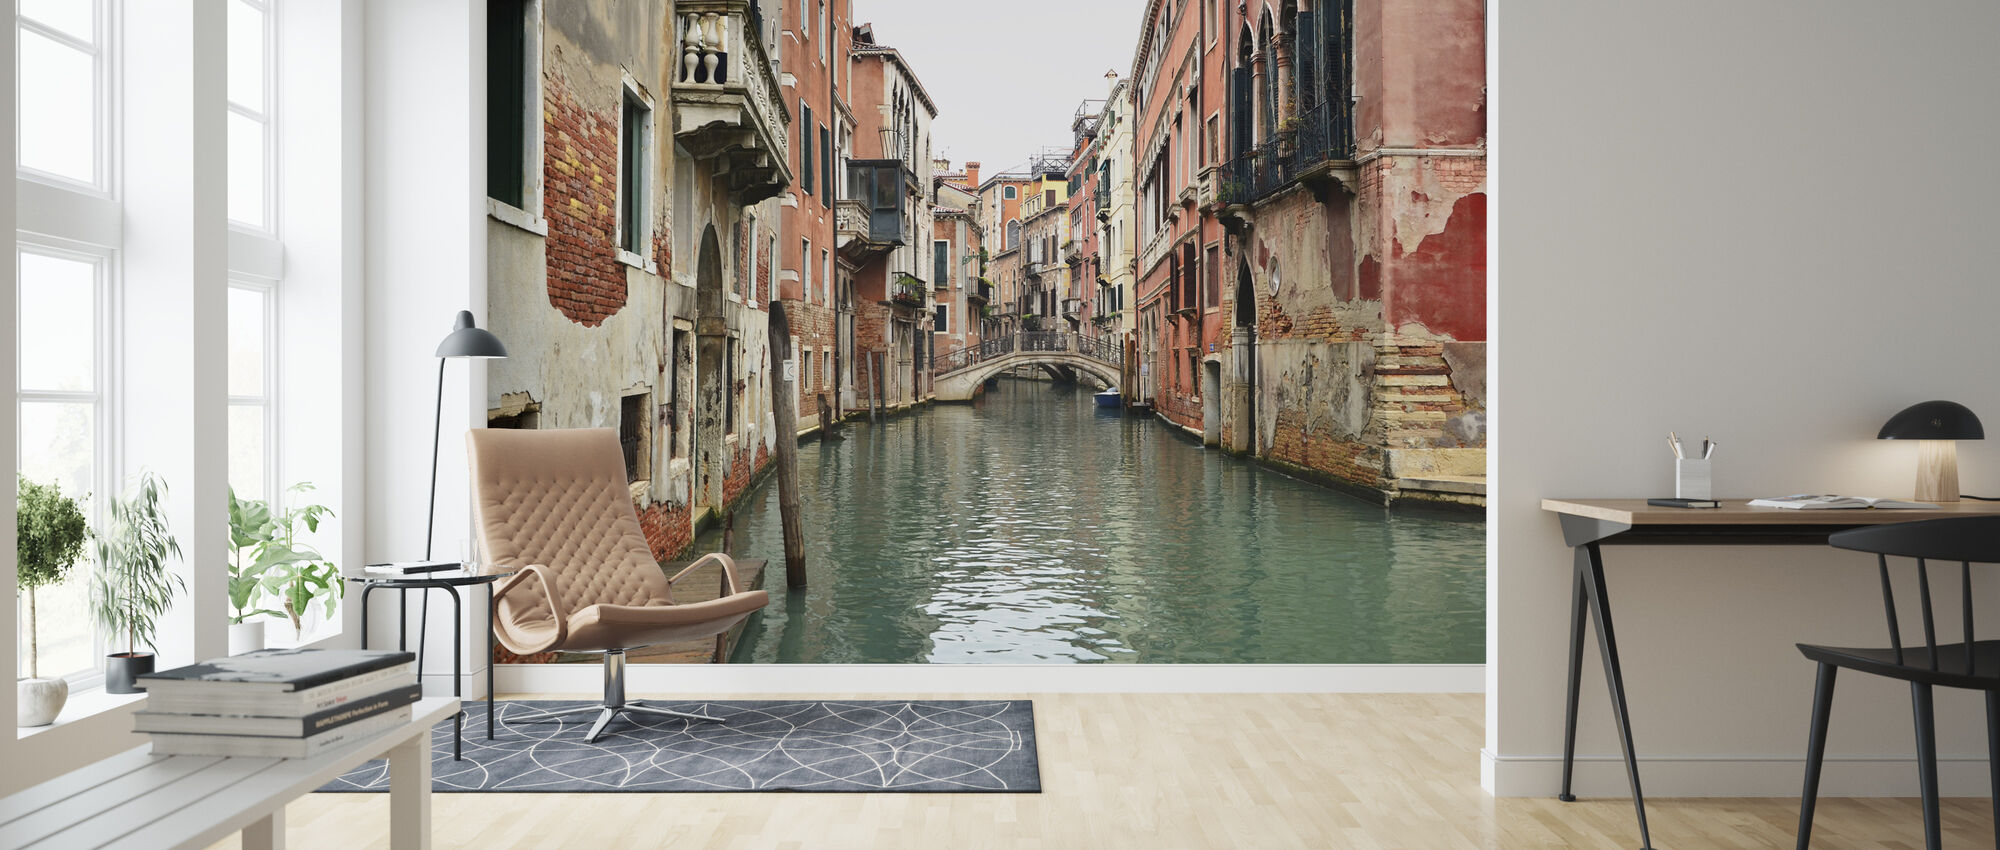 Bricks and Water Alleys in Venice - Wallpaper - Living Room